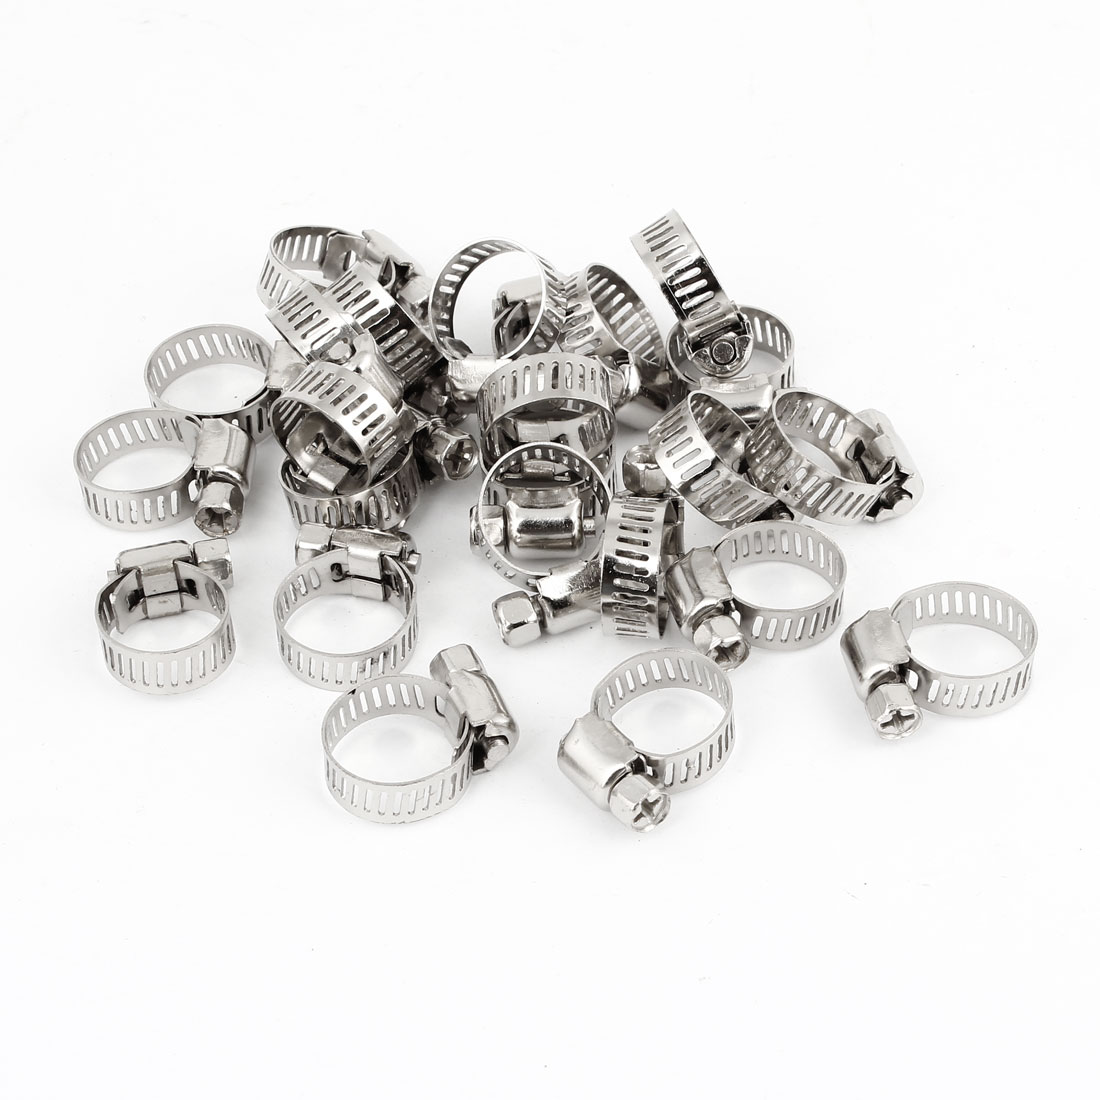 25 Pcs Silver Tone 10-16mm Adjustable Worm Drive Hose Clamps 8mm Width